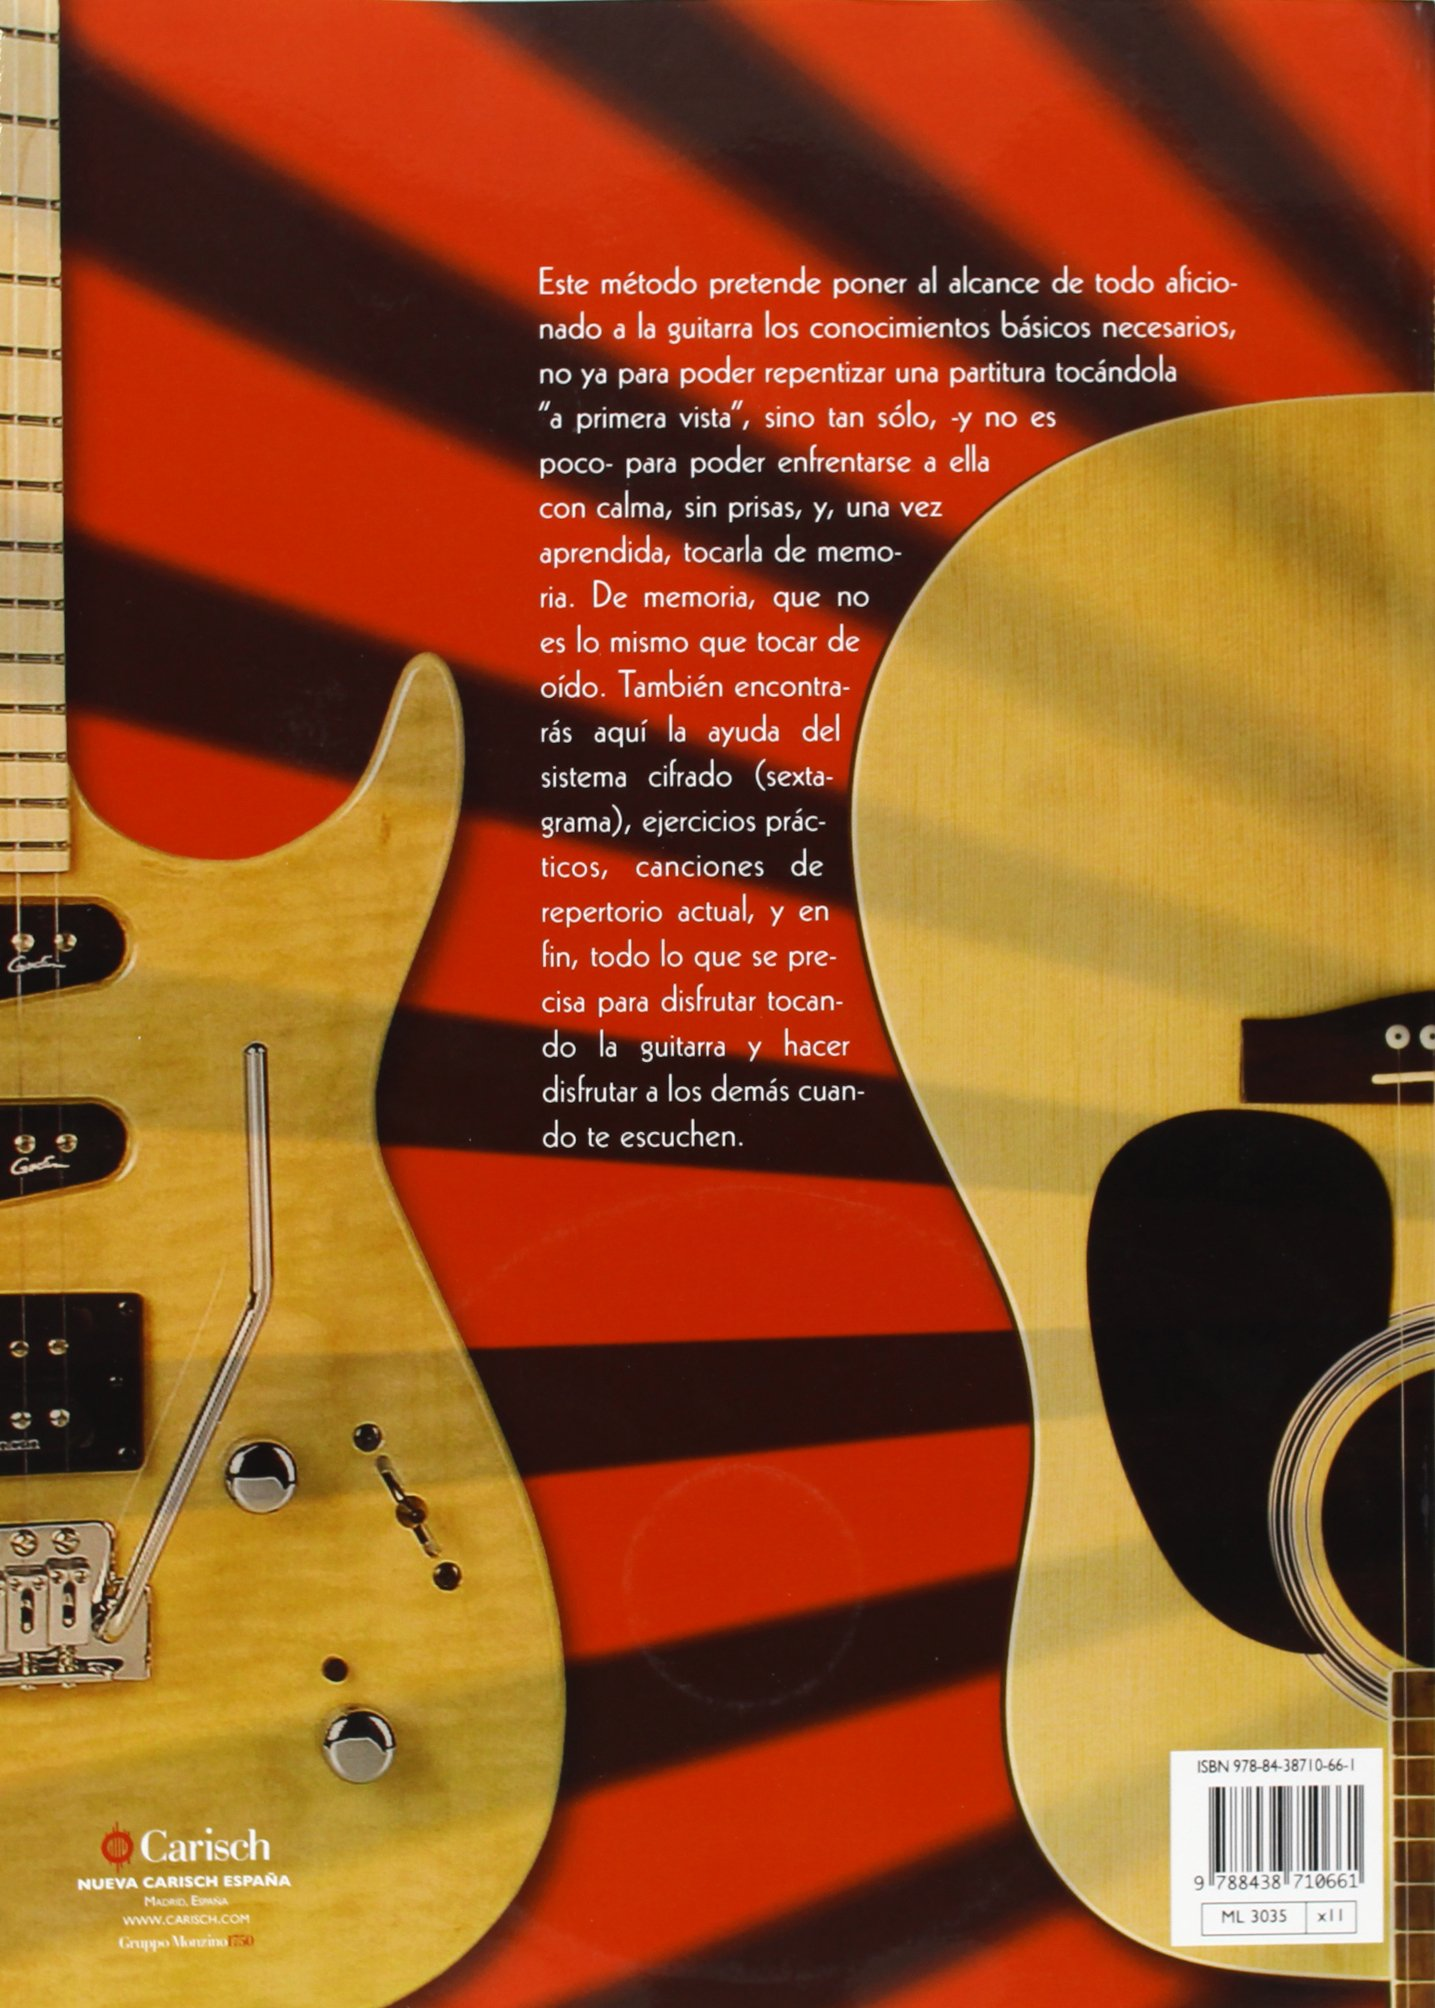 Amazon.com: ZAPATA - Metodo para Guitarra Acustica y Electrica (Inc.CD) (9788438710661): ZAPATA: Books